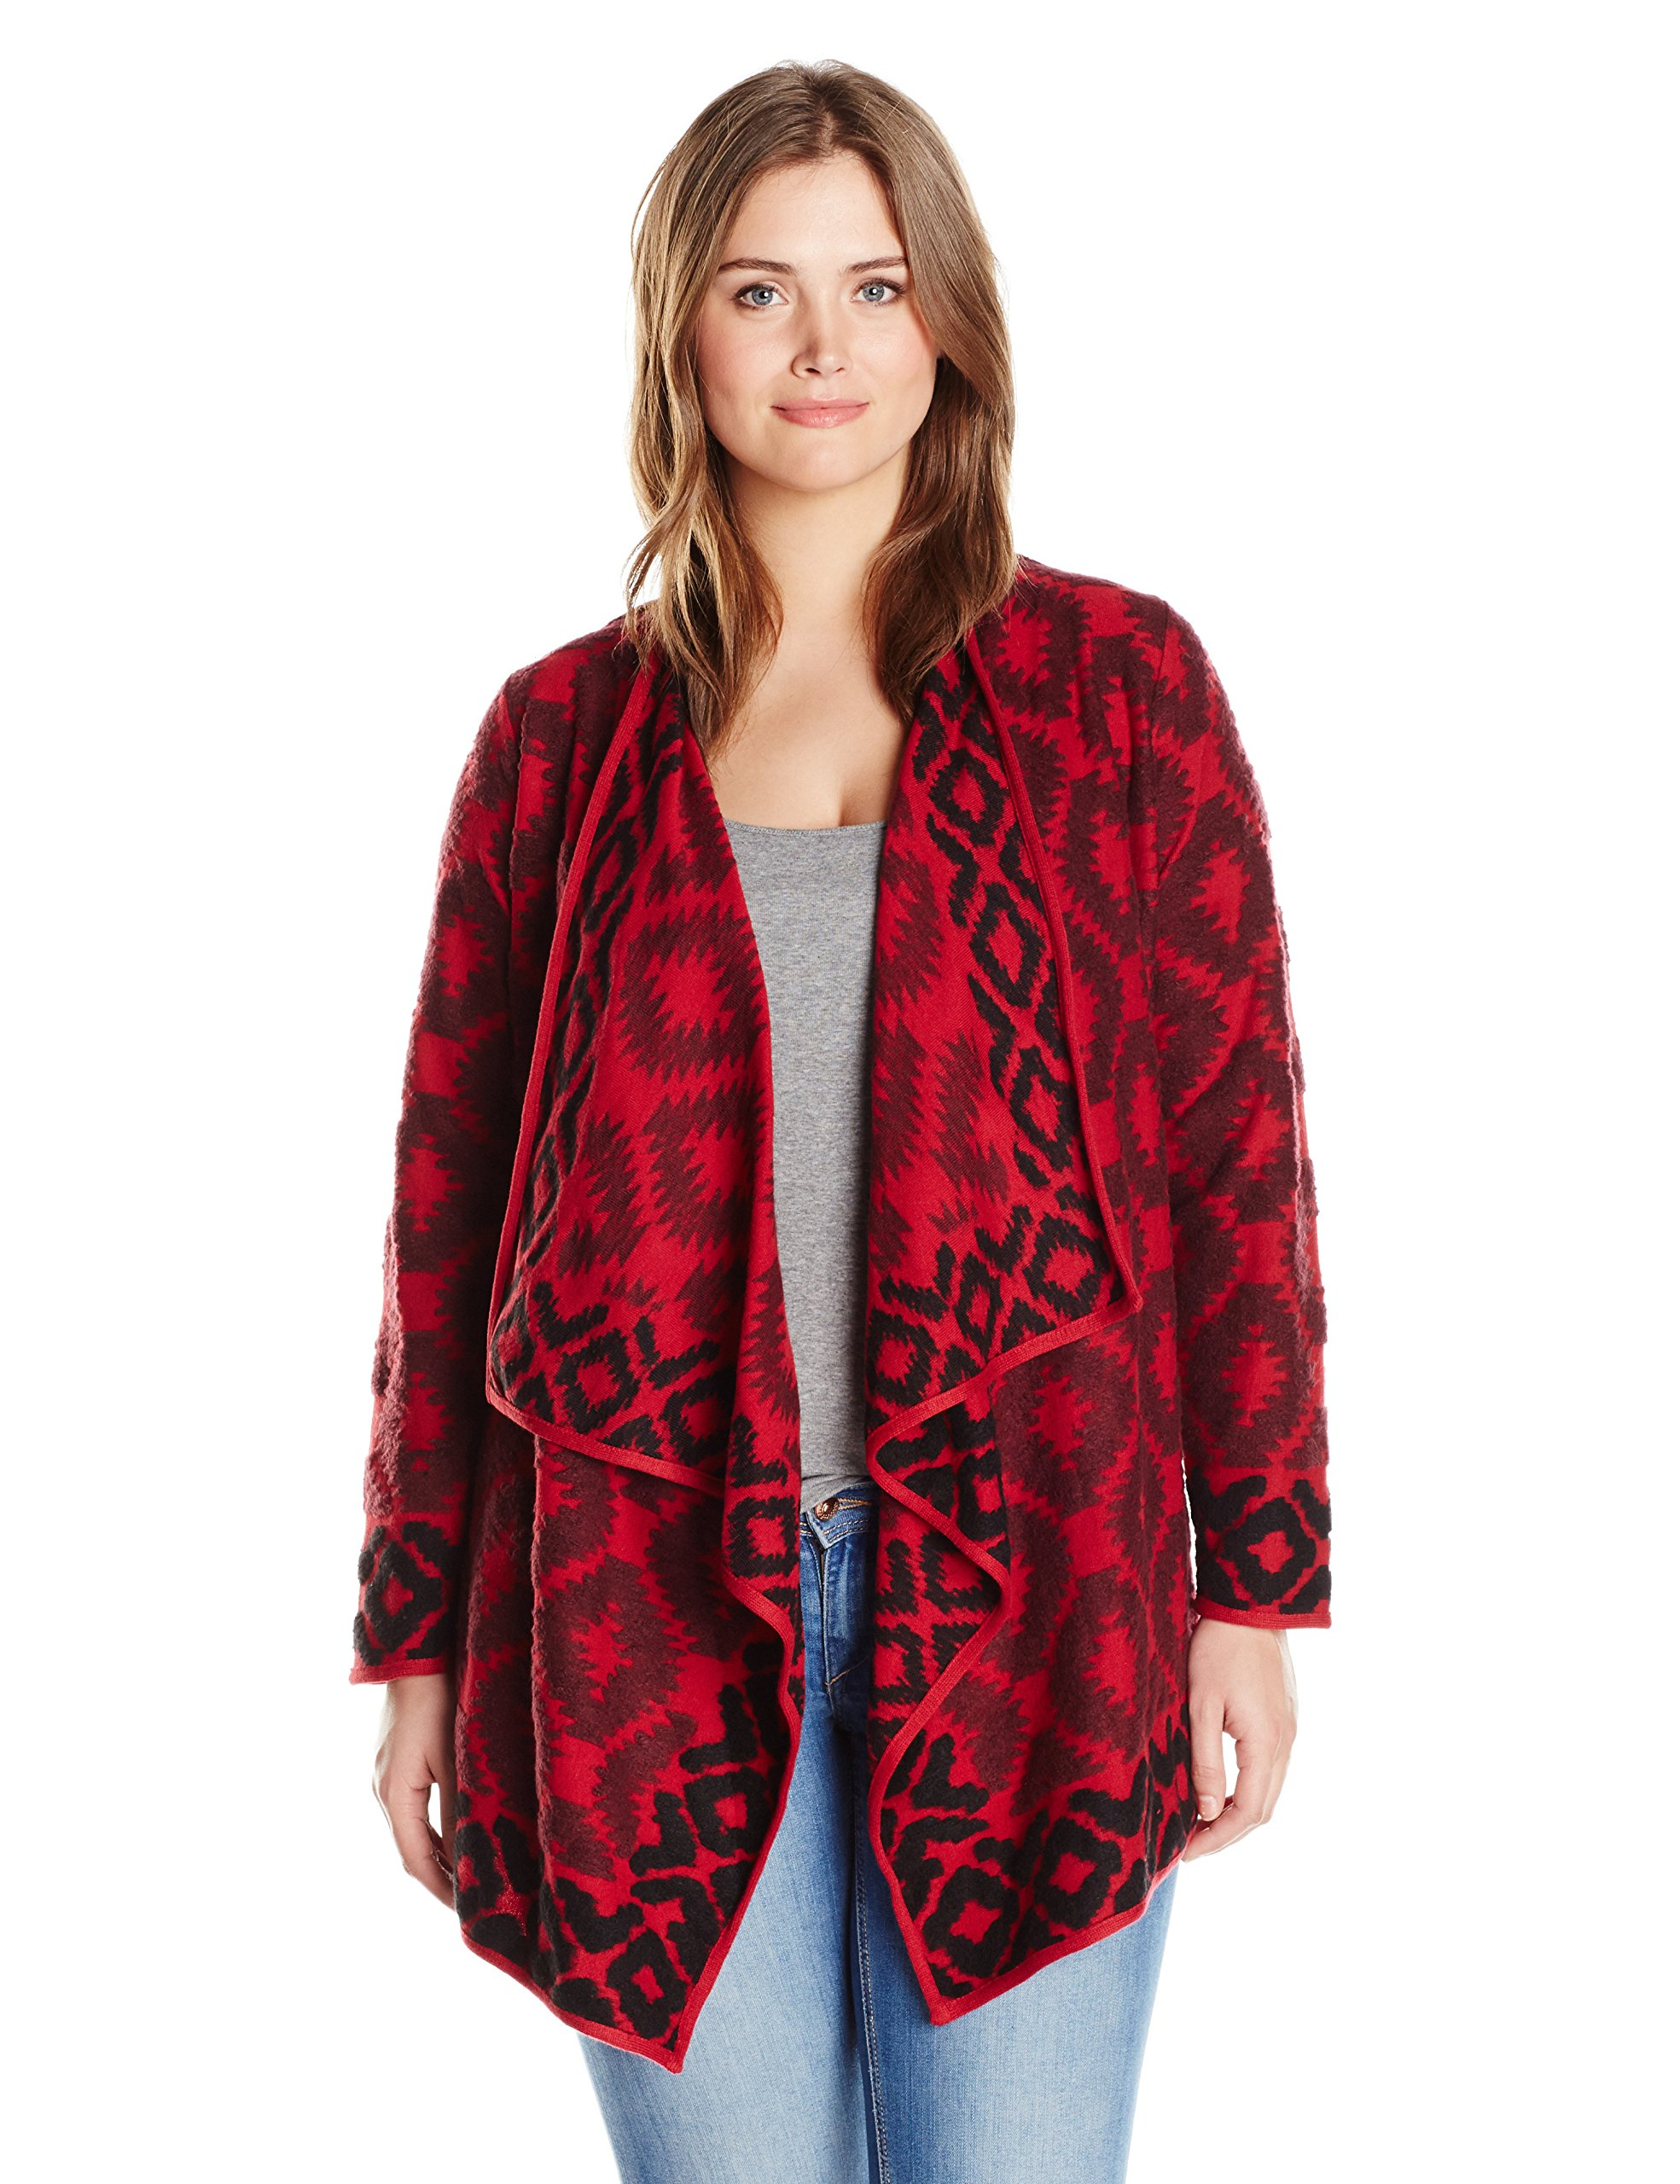 Lucky Brand Women's Plus Size Aztec Wrap Swater, Red/Multi, 2X